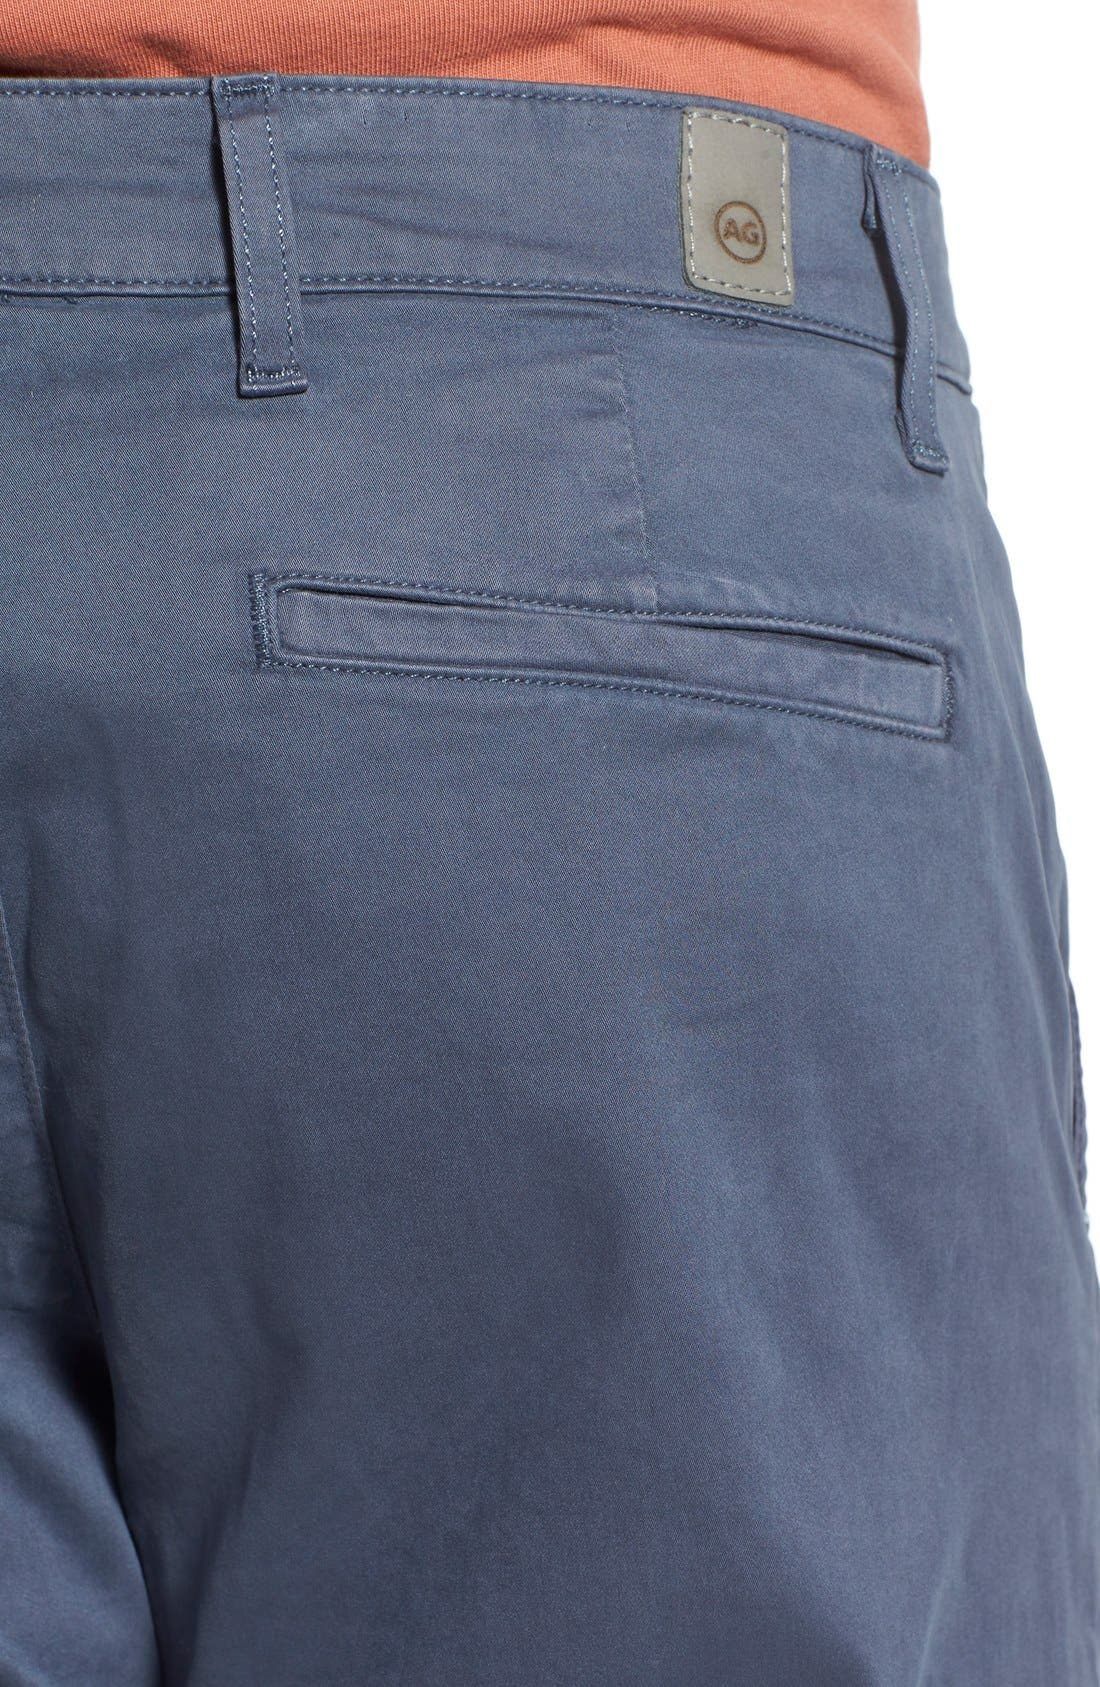 'The Lux' Tailored Straight Leg Chinos,                             Alternate thumbnail 47, color,